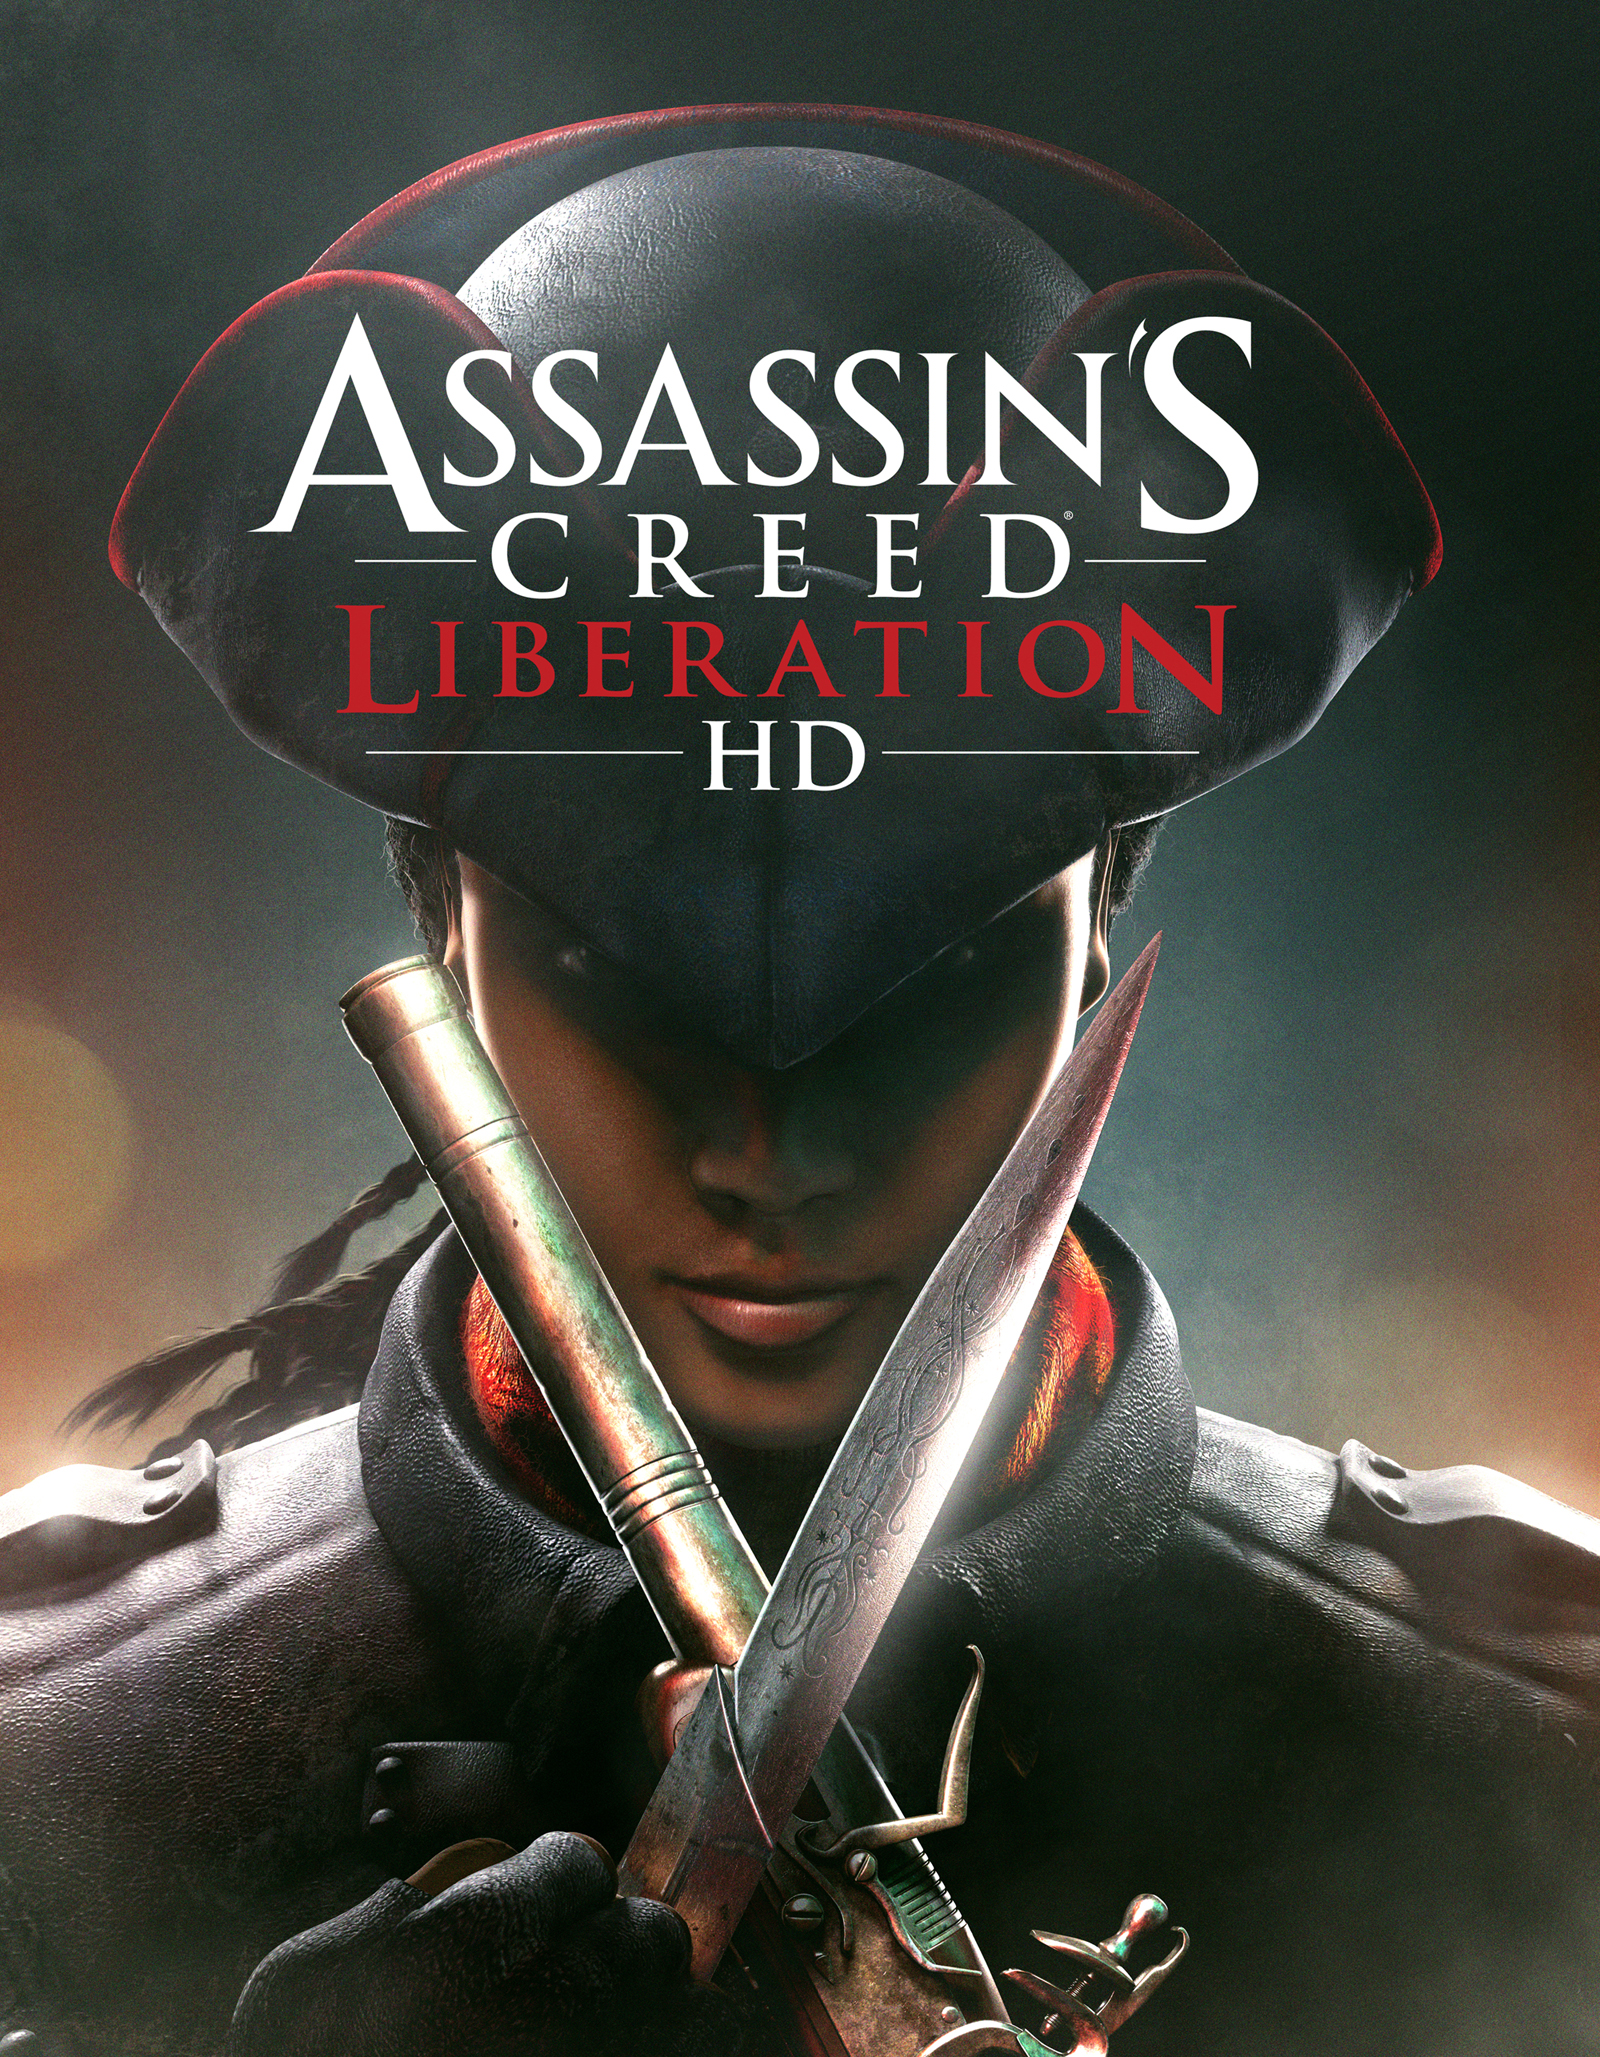 Assassins Creed - Liberation HD